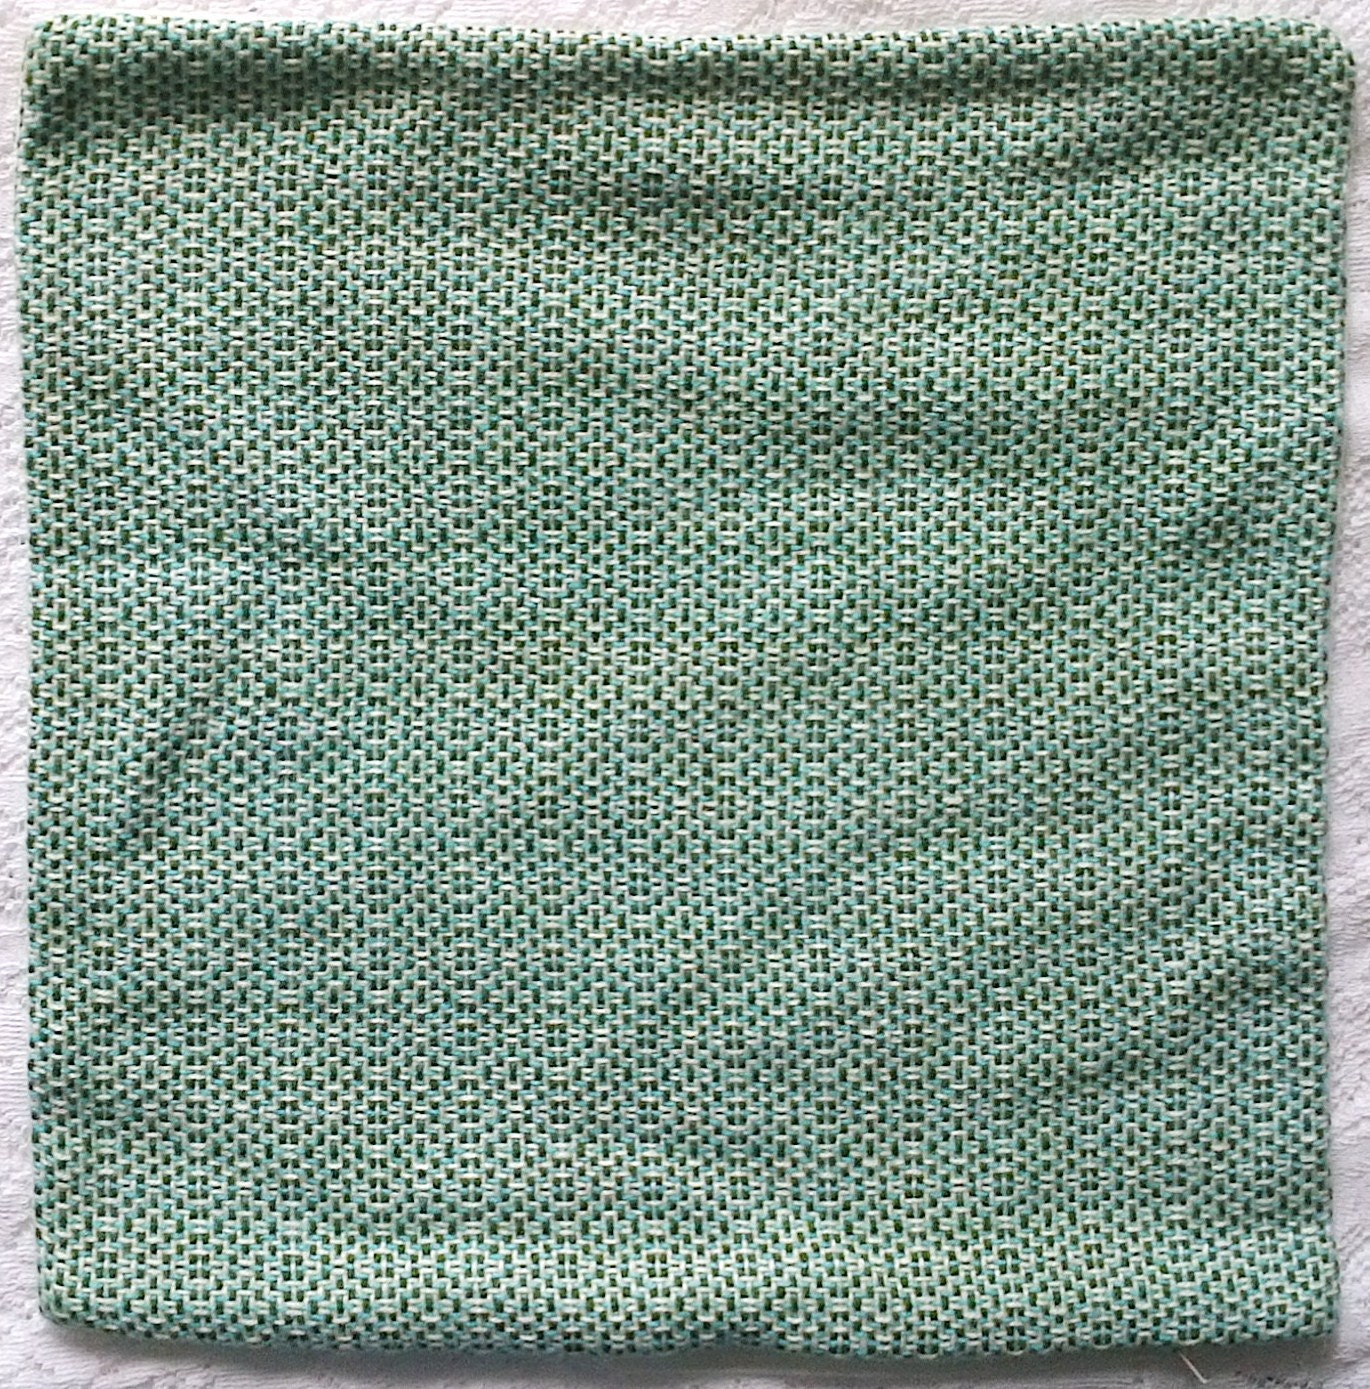 Indigo Ivory Turquoise Blue & Avocado Green Woven Large Square Pillow Cover - 18 X 18 - Acrylic and Linen